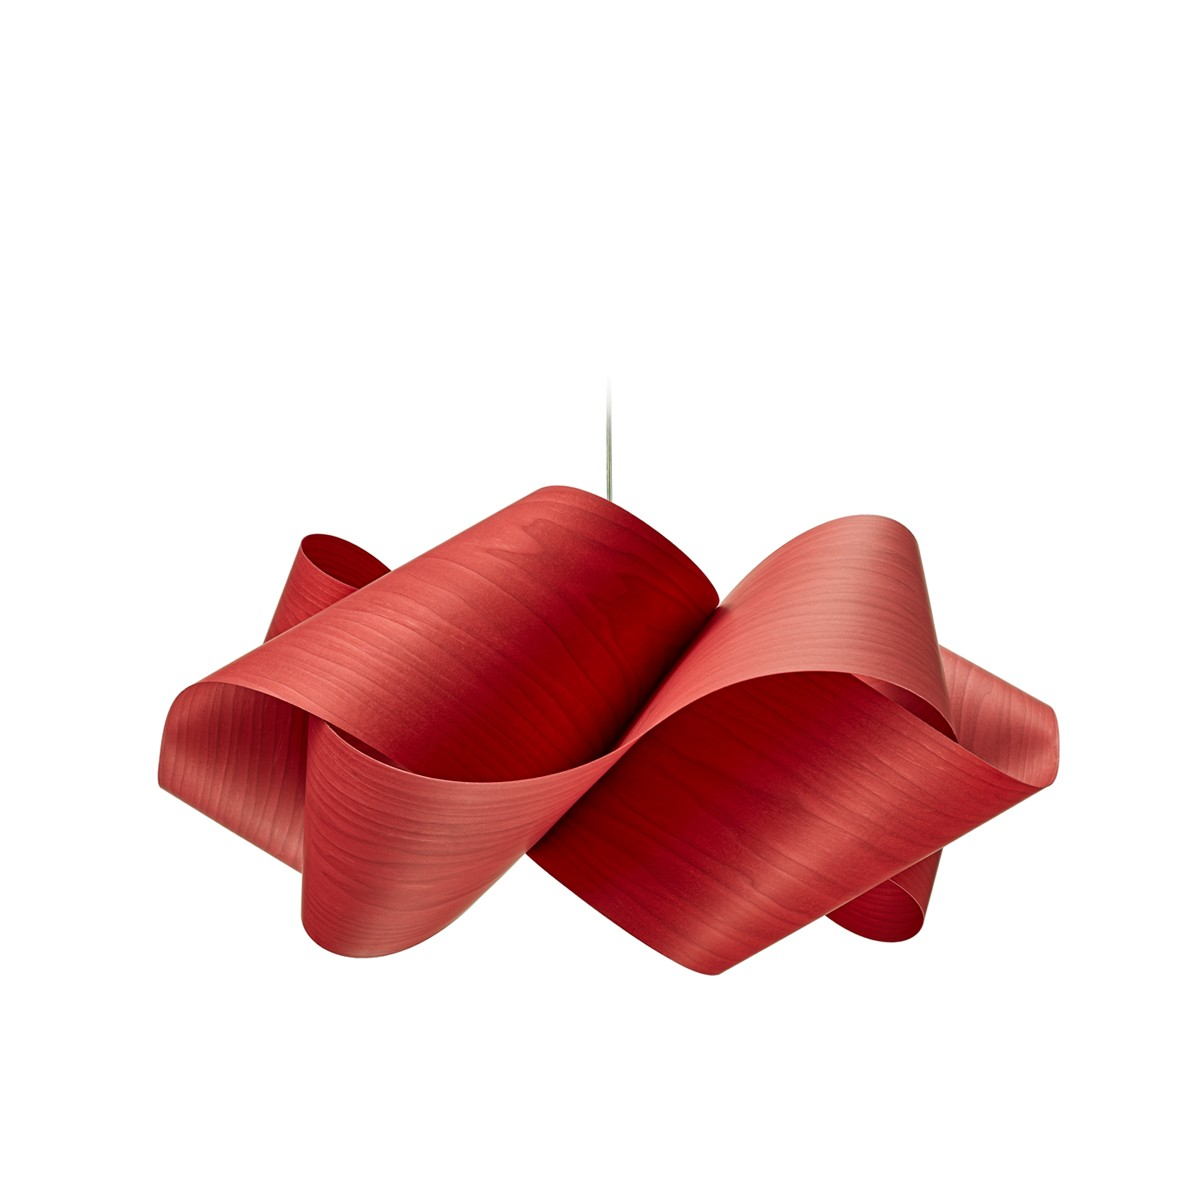 LZF Lamps Swirl Small Pendelleuchte, rot